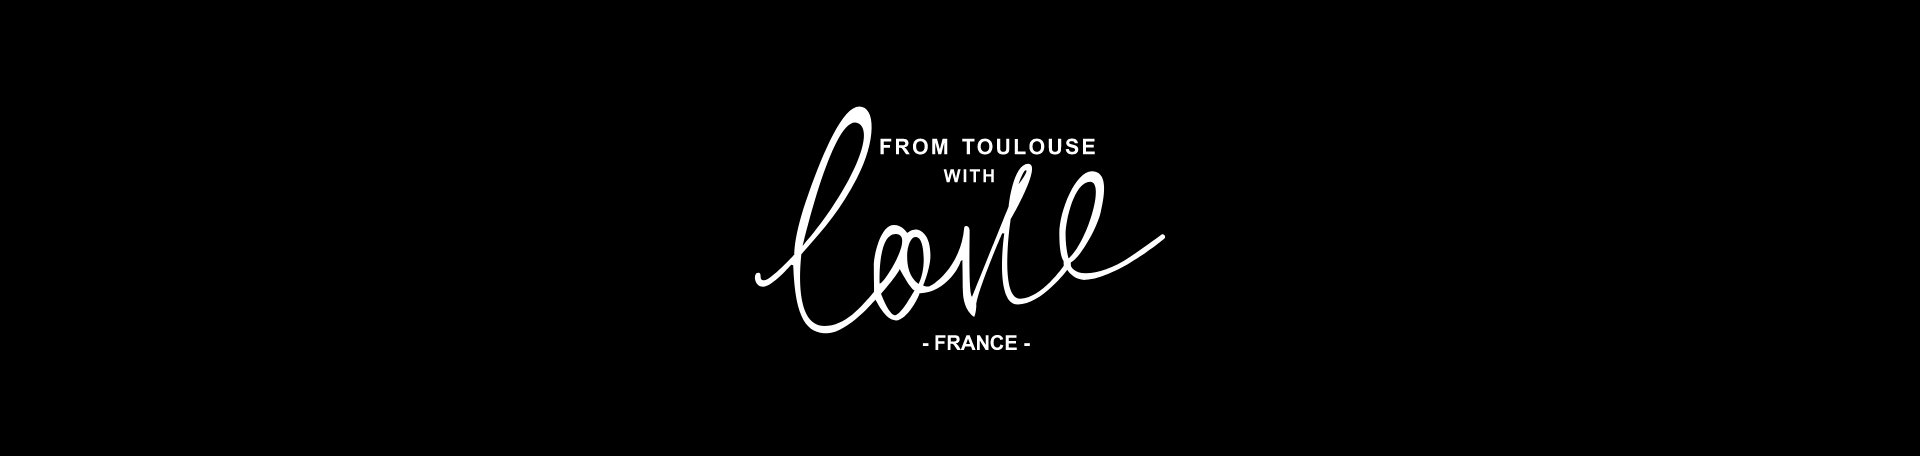 From Toulouse With Love